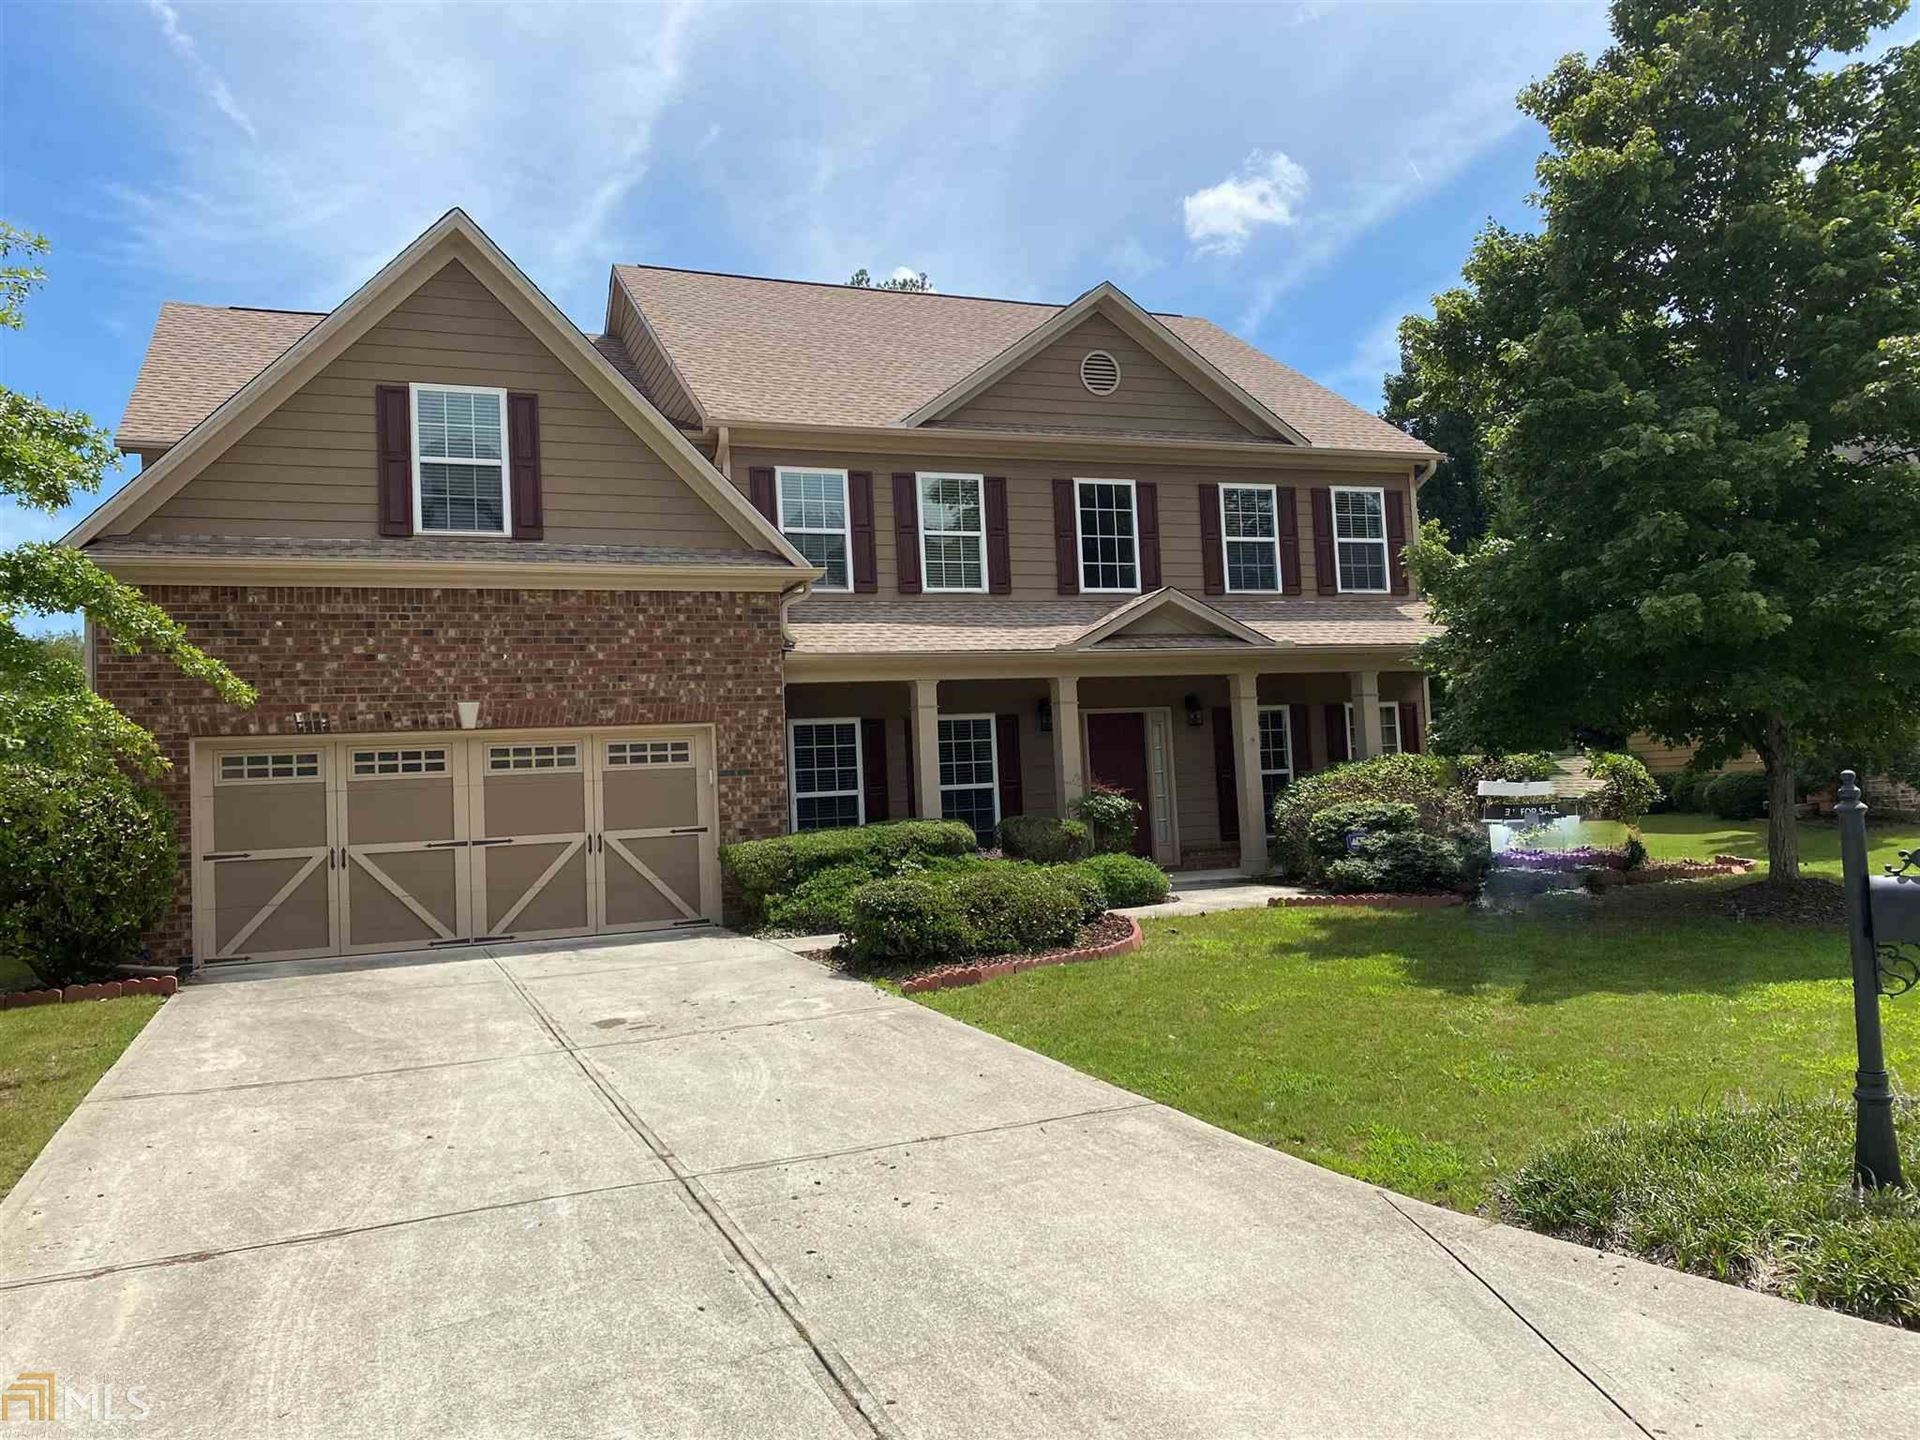 6811 Merlin Ct, Mableton, GA 30126 - MLS#: 8849300